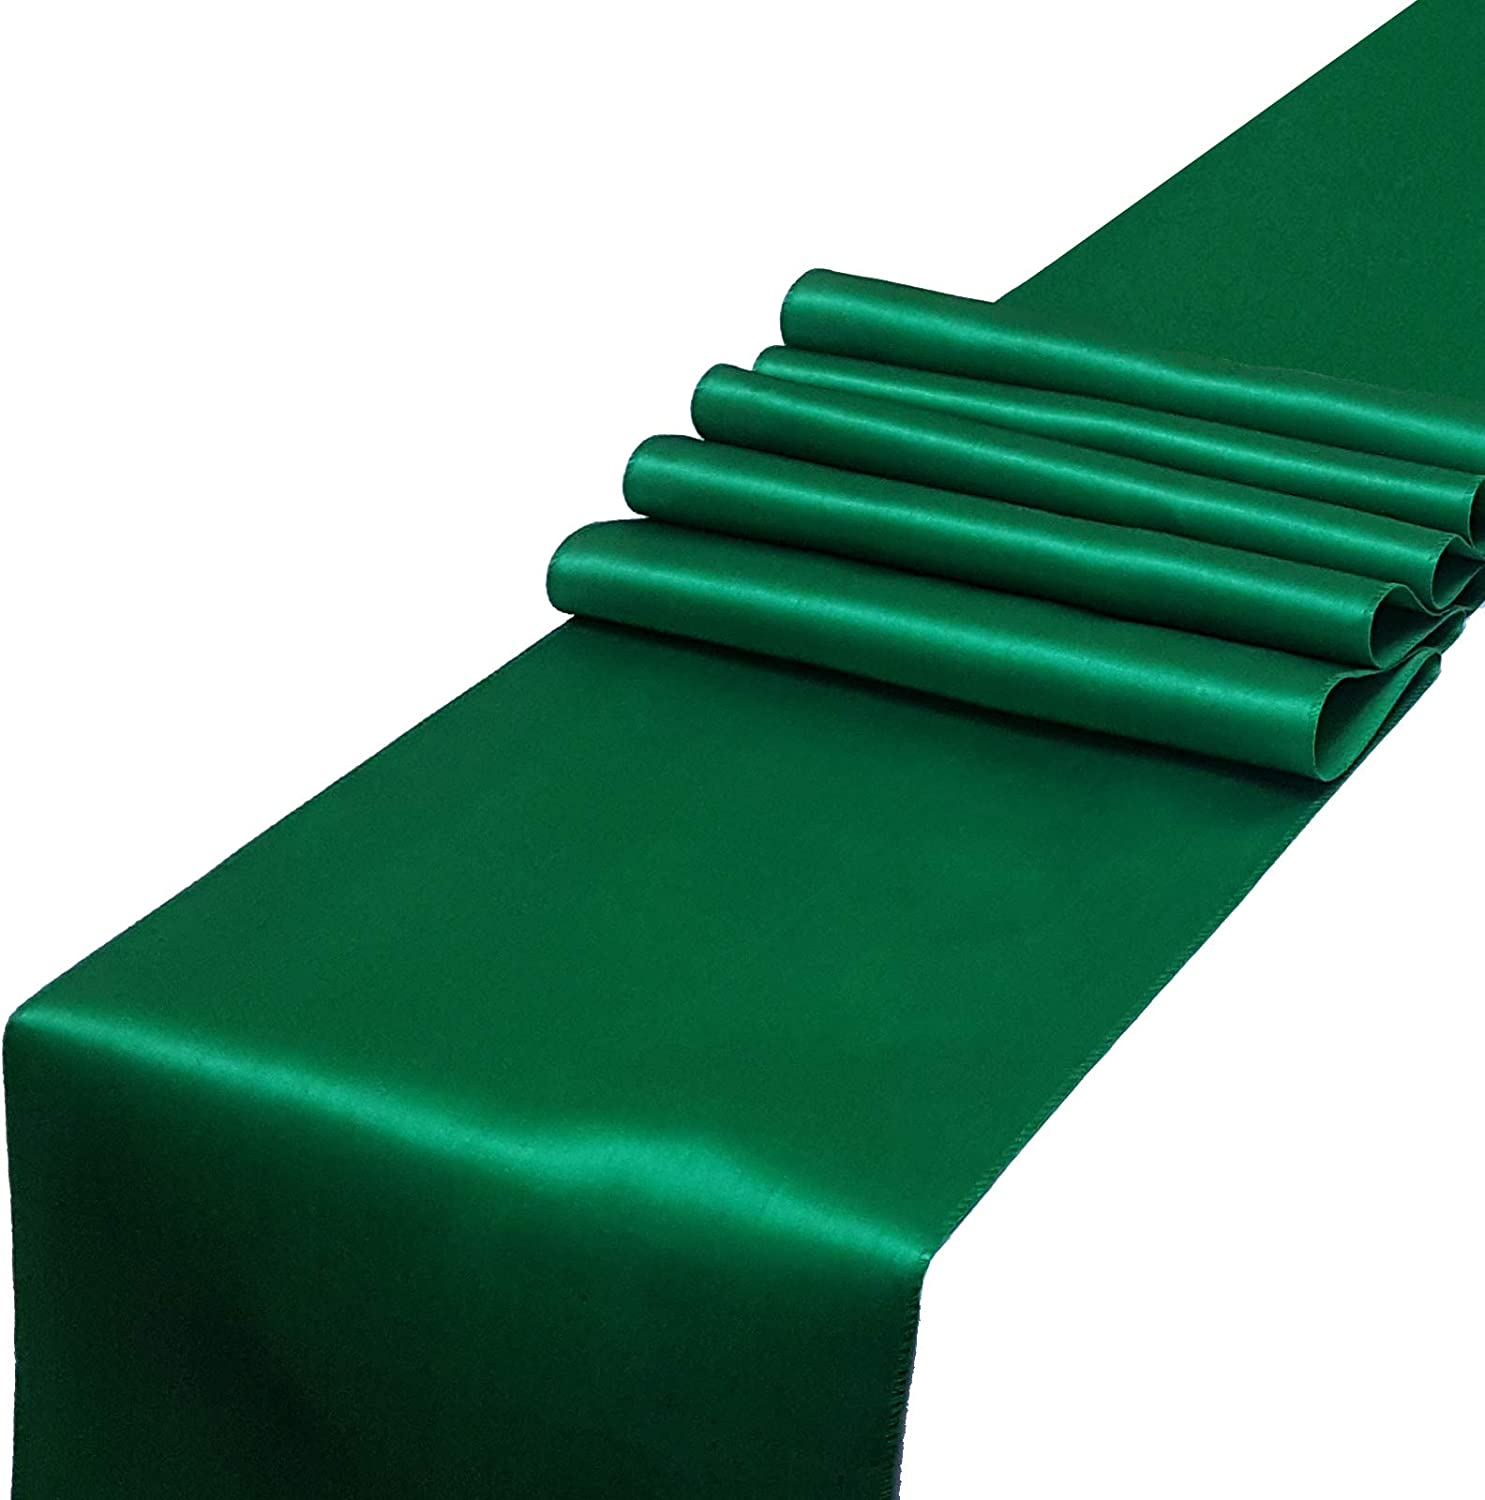 Parfair Dessin Pack of 5 Satin Table Runners 12 x 108 inch for Wedding Banquet Decoration, Bright Silk and Smooth Fabric Party Table Runner - Green